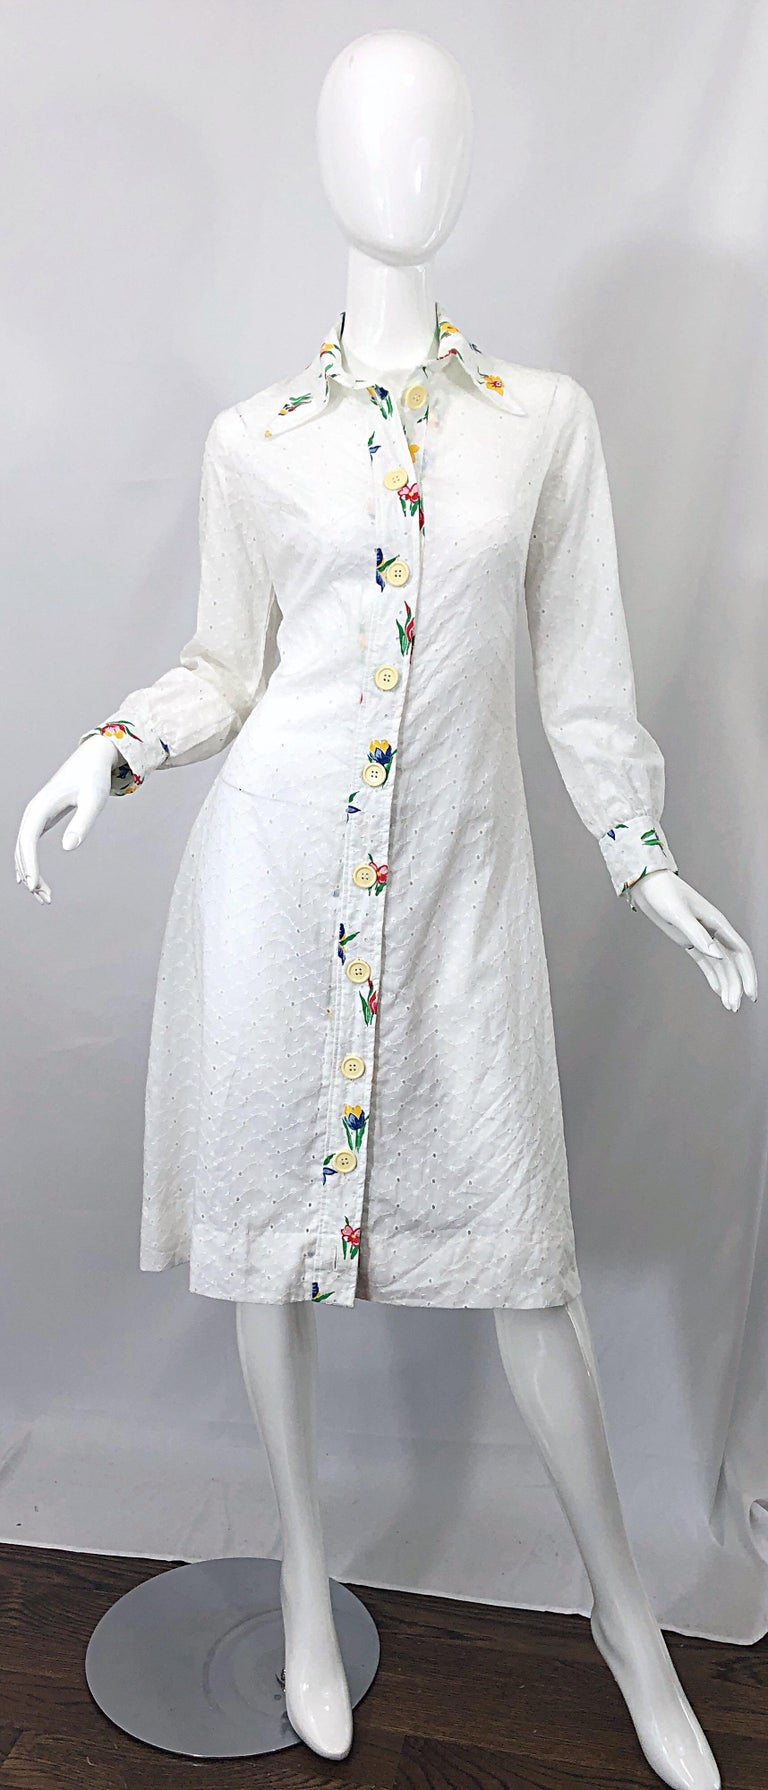 1970s Joseph Magnin White Eyelet Cotton Embrodiered Vintage 70s Shirt Dress For Sale 8